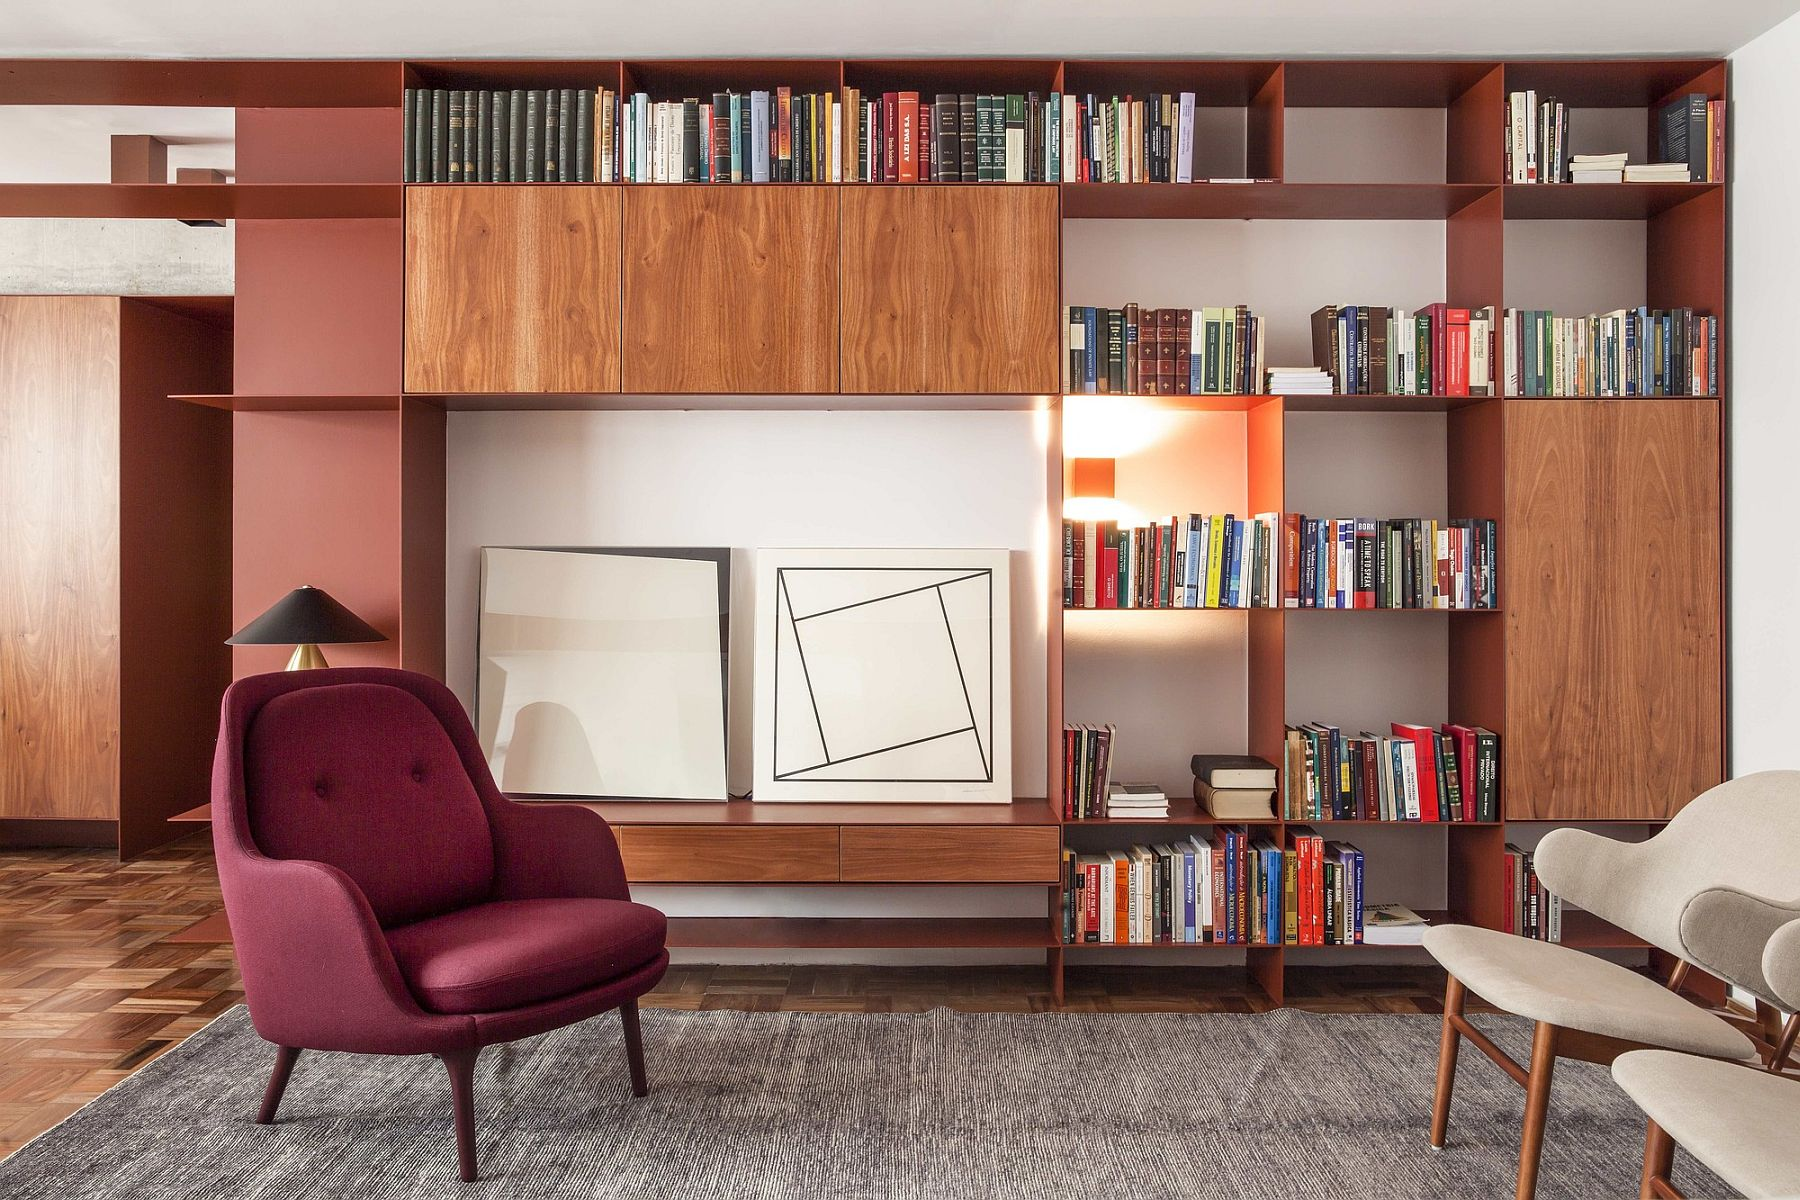 Metal-and-wood-shelf-in-the-living-room-brings-a-pop-of-bight-red